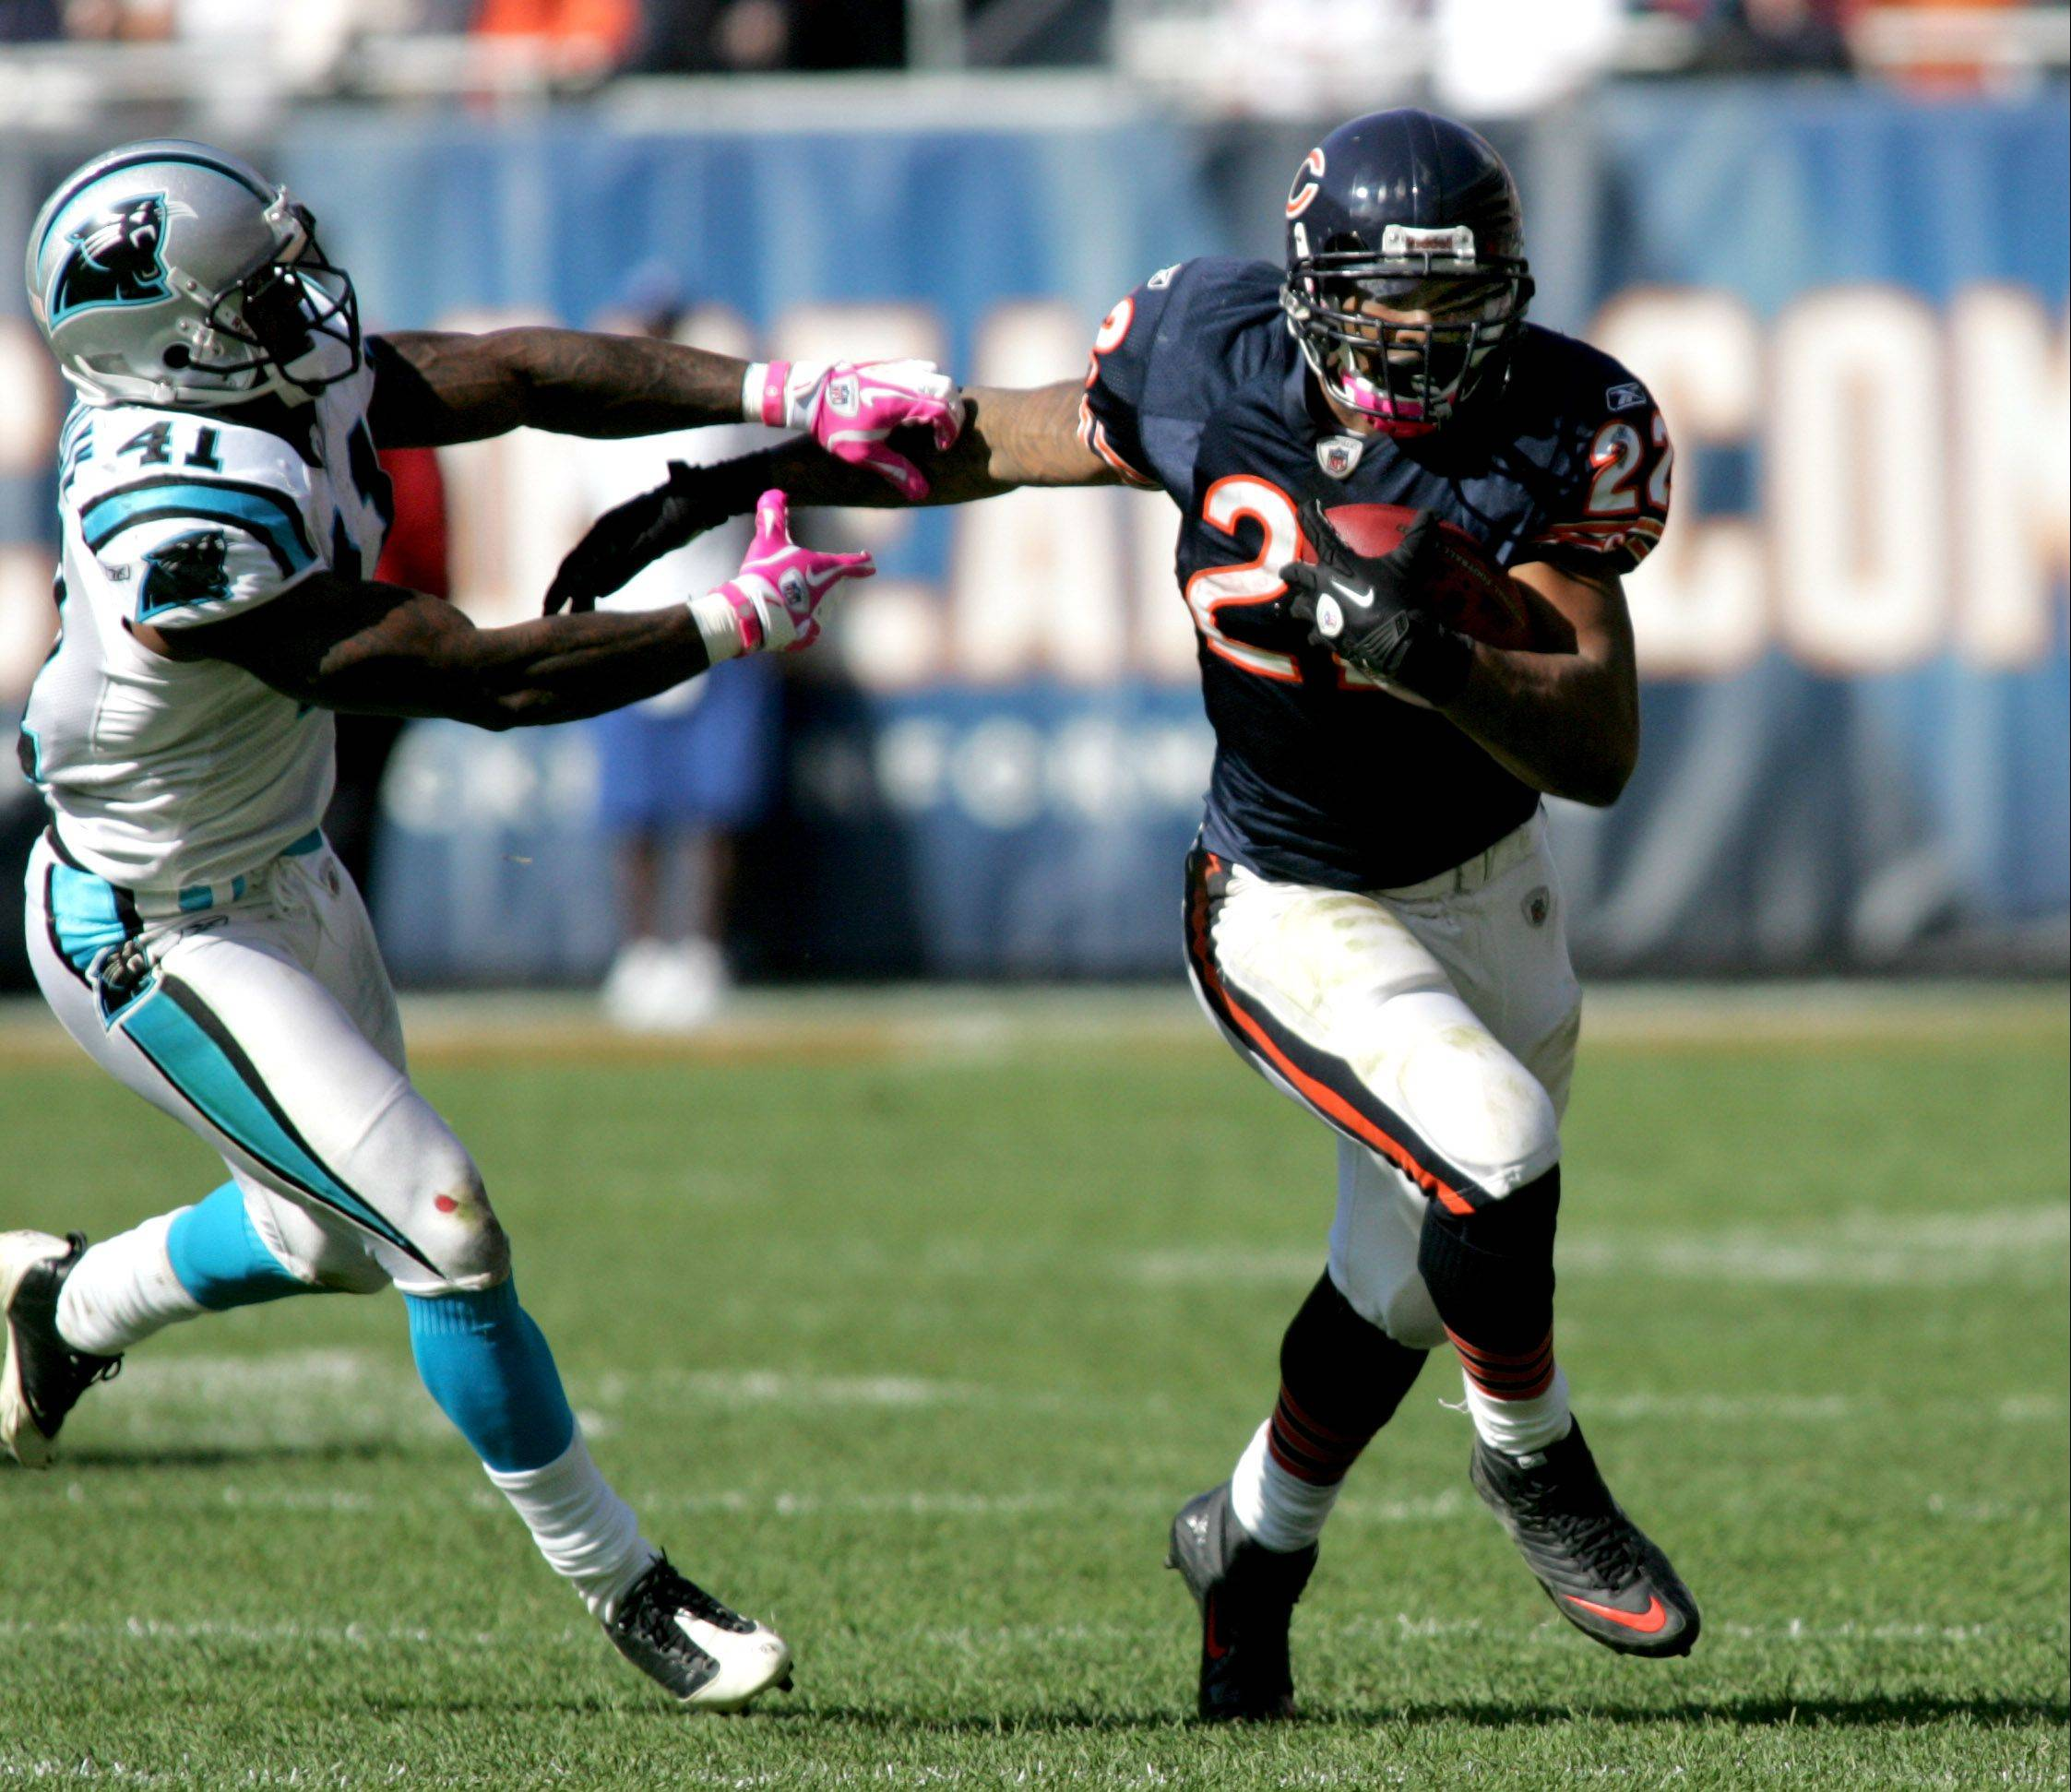 Matt Forte of the Bears with the ball as Captain Munnerlyn of Carolina Panthers oves in for a tackle at Soldier Field on Sunday.